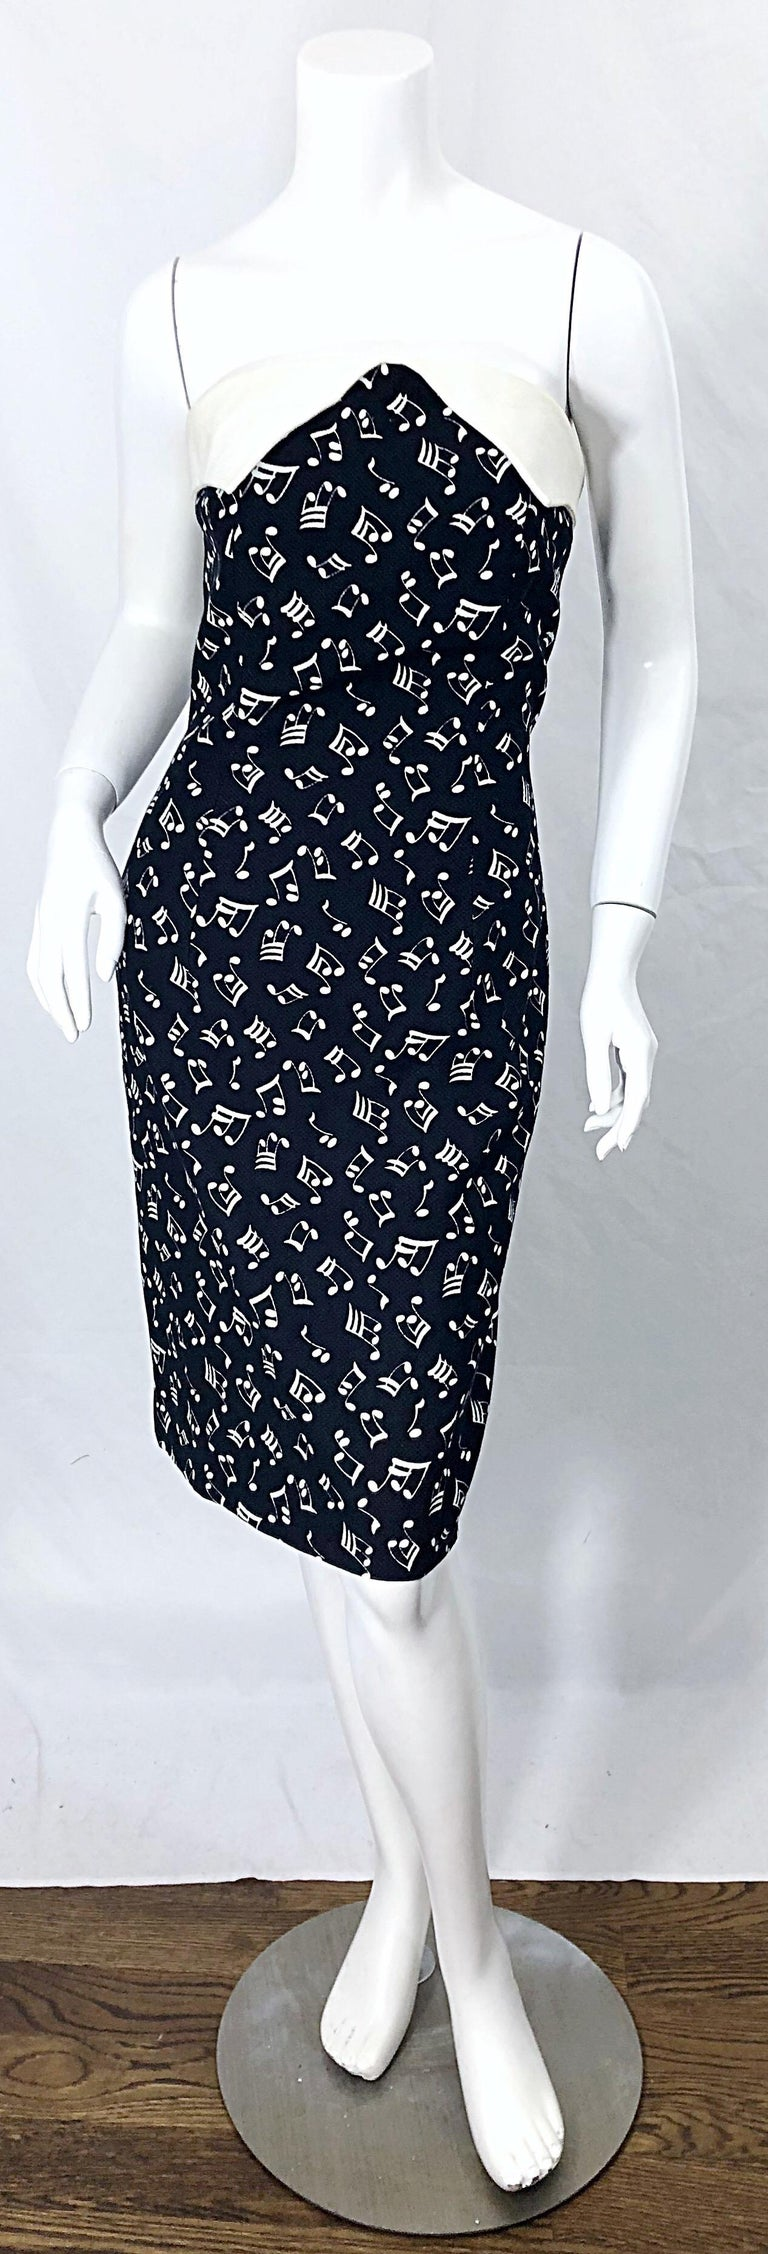 Rare vintage 80s PATRICK KELLY novelty music print black and white strapless dress ! Features a black cotton fabric with printed white music notes throughout. White poplin cotton trim around the bodice. Hidden zipper up the back with hook-and-eye